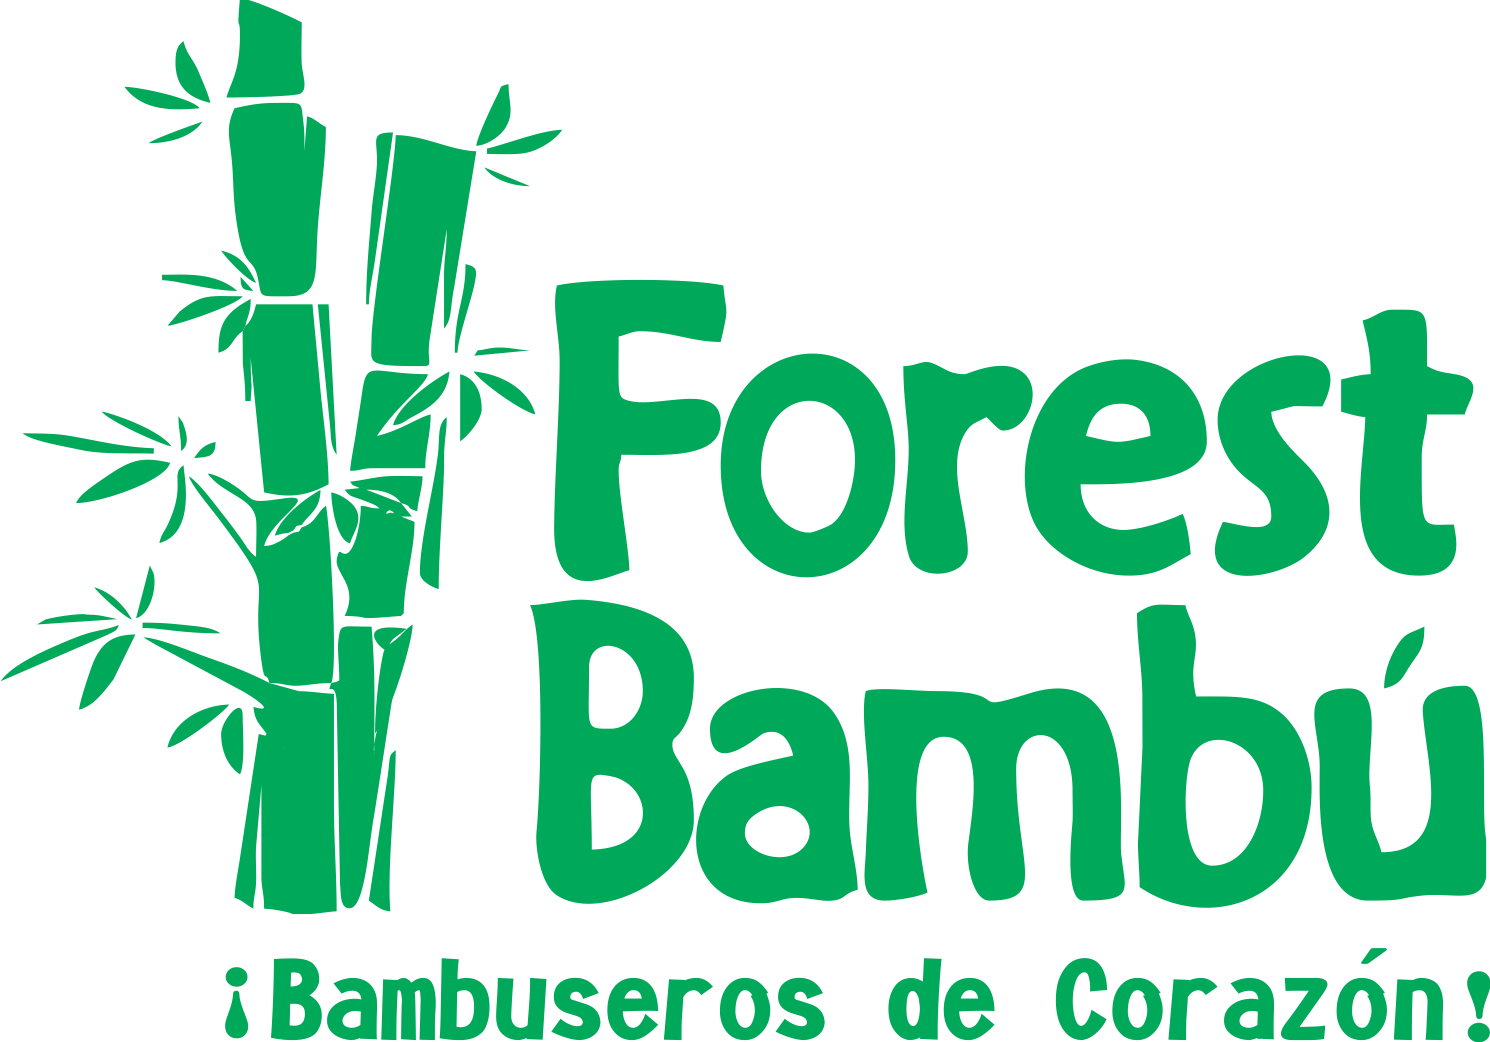 Forestbambú Perú